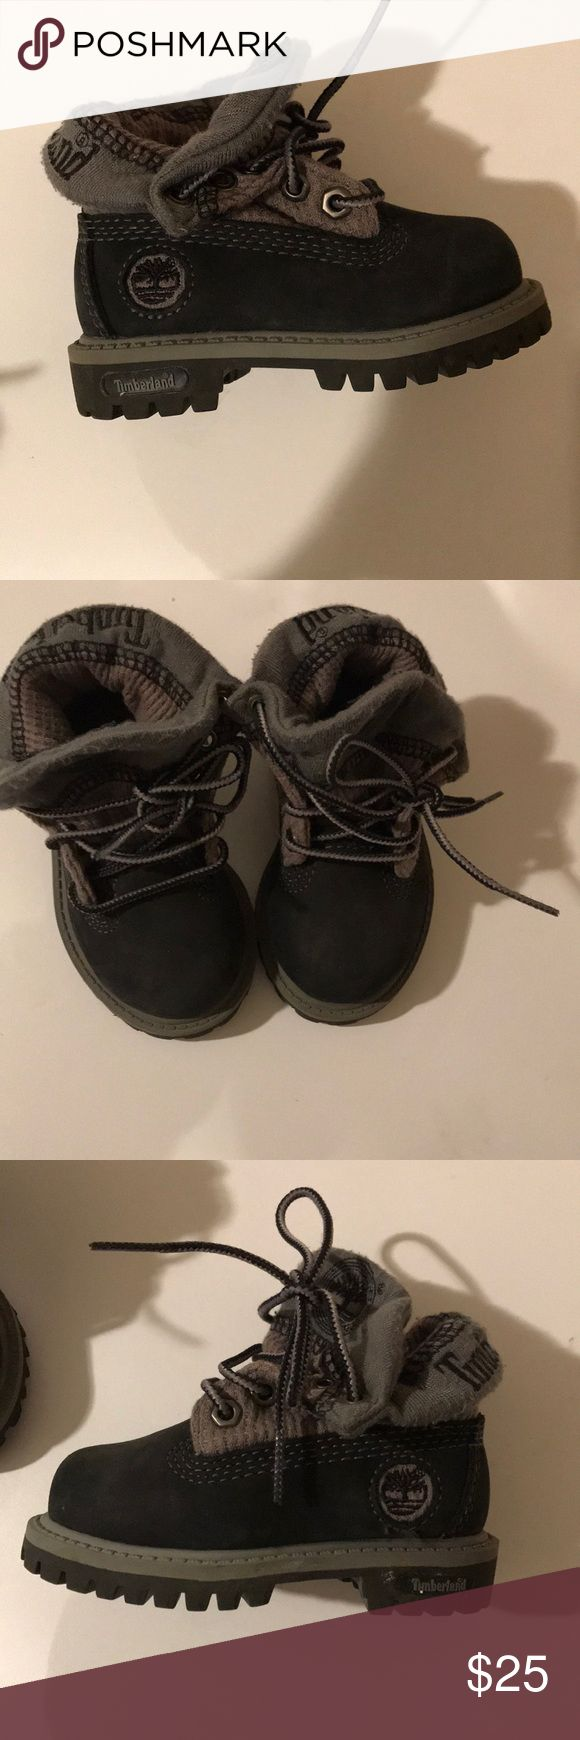 Infant size 4 timberland boots Timberland boots size 4 infant Timberland Shoes Boots